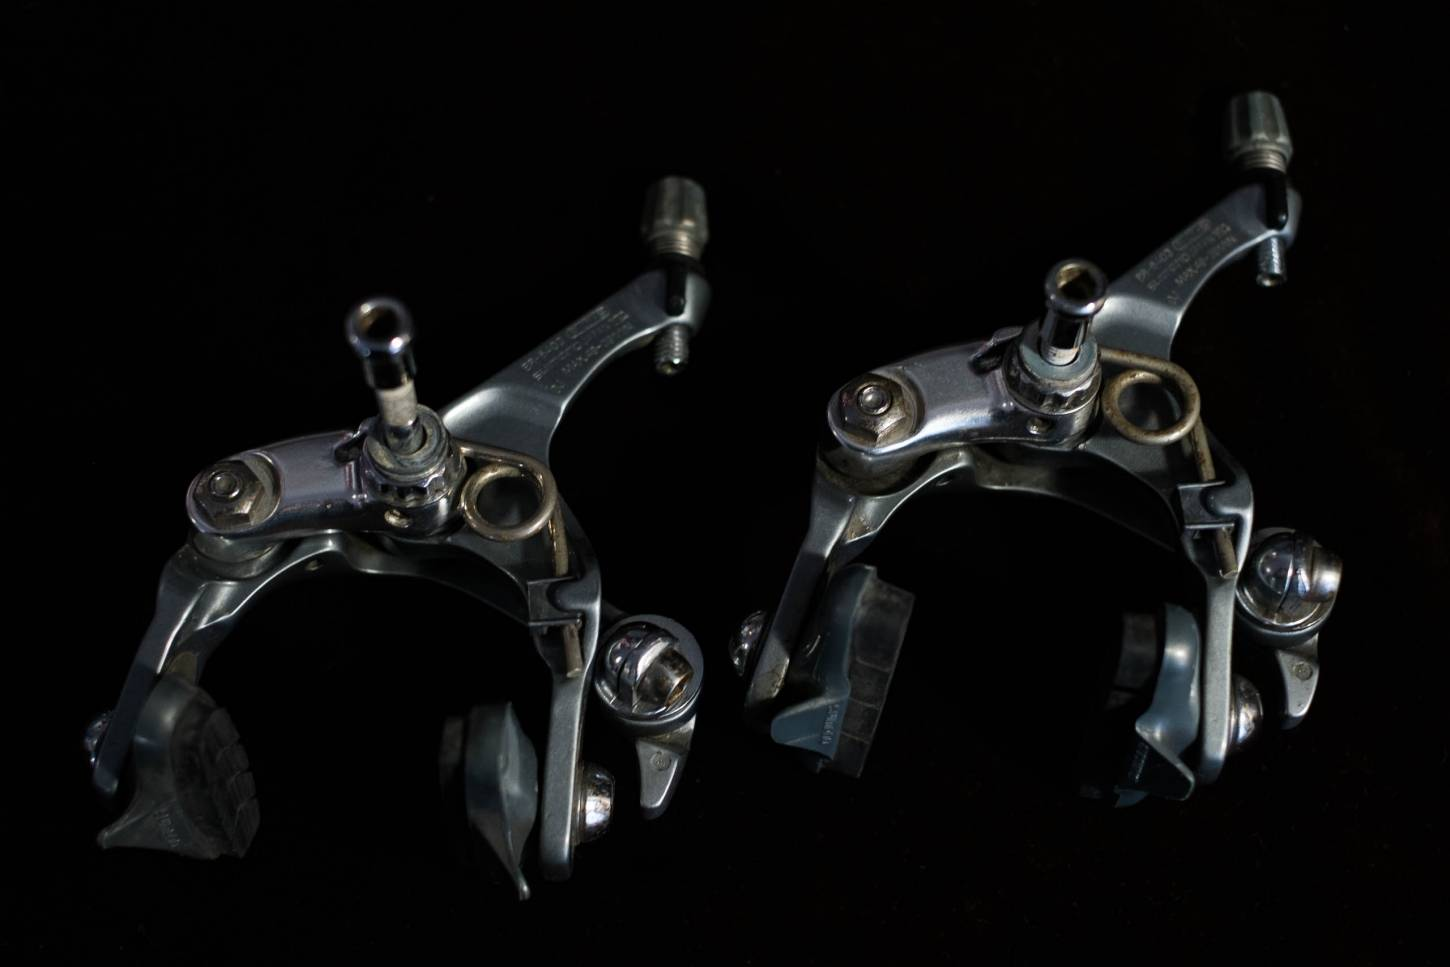 Shimano 600 Ultegra Bremsen Set BR-6403 Brake Calipers Set Vintage Rennrad